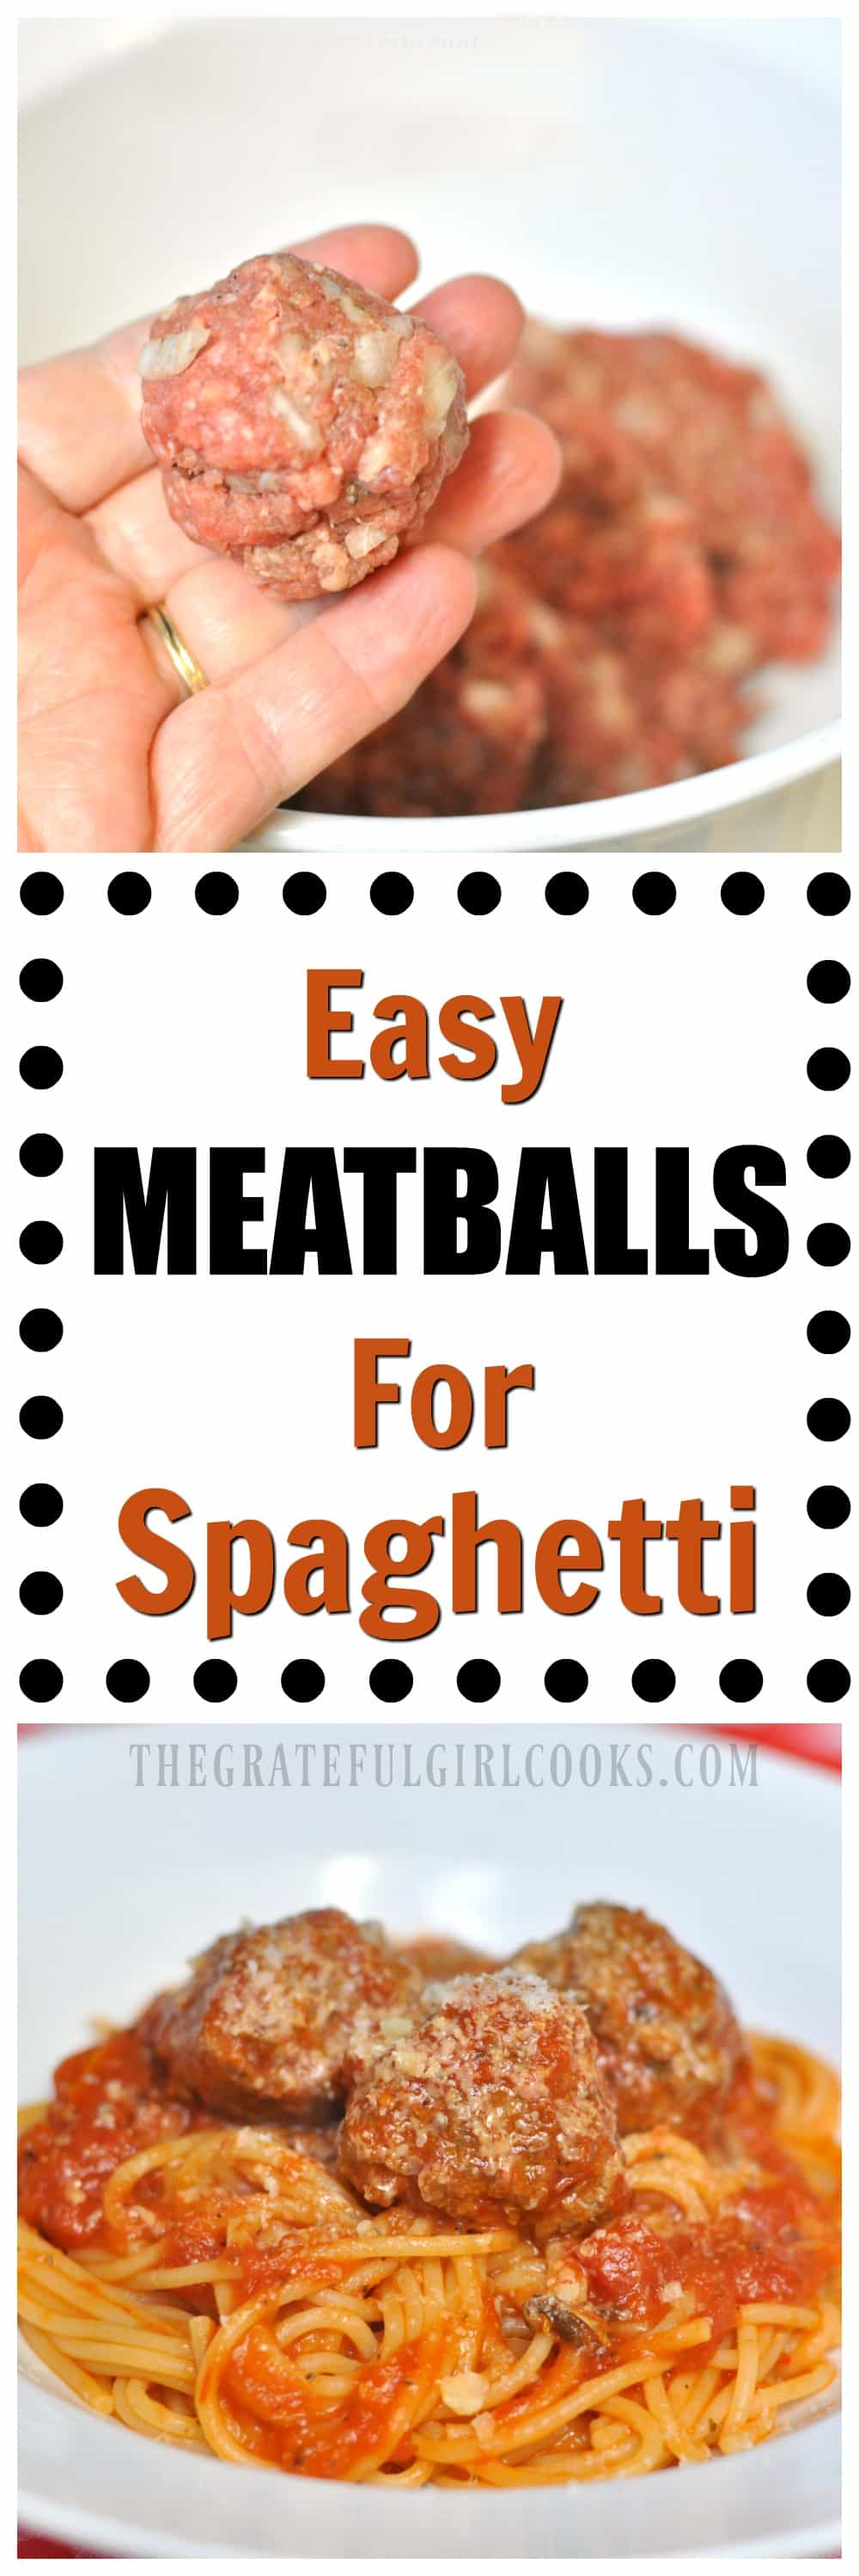 Easy Meatballs For Spaghetti / The Grateful Girl Cooks!